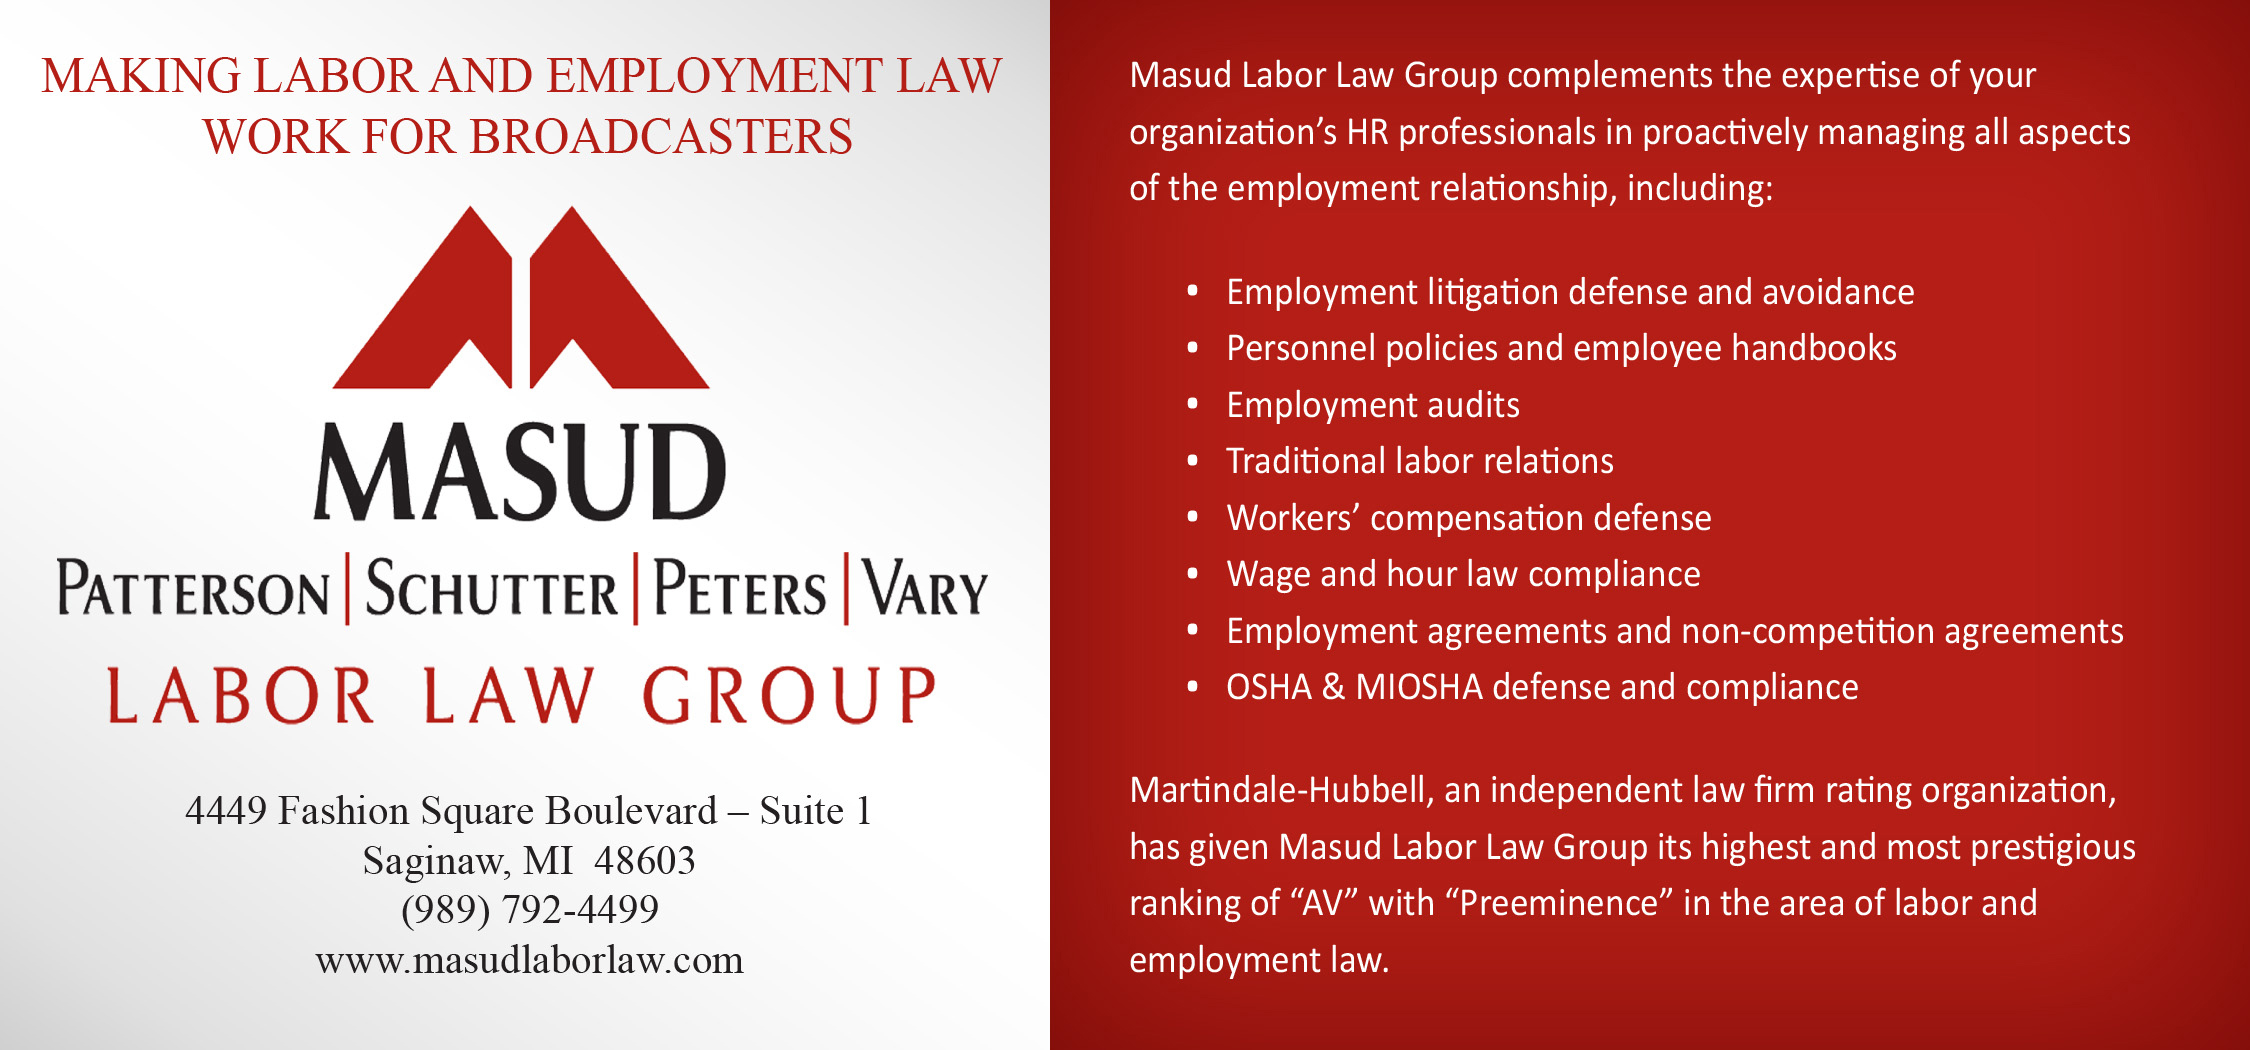 Masud Labor Law